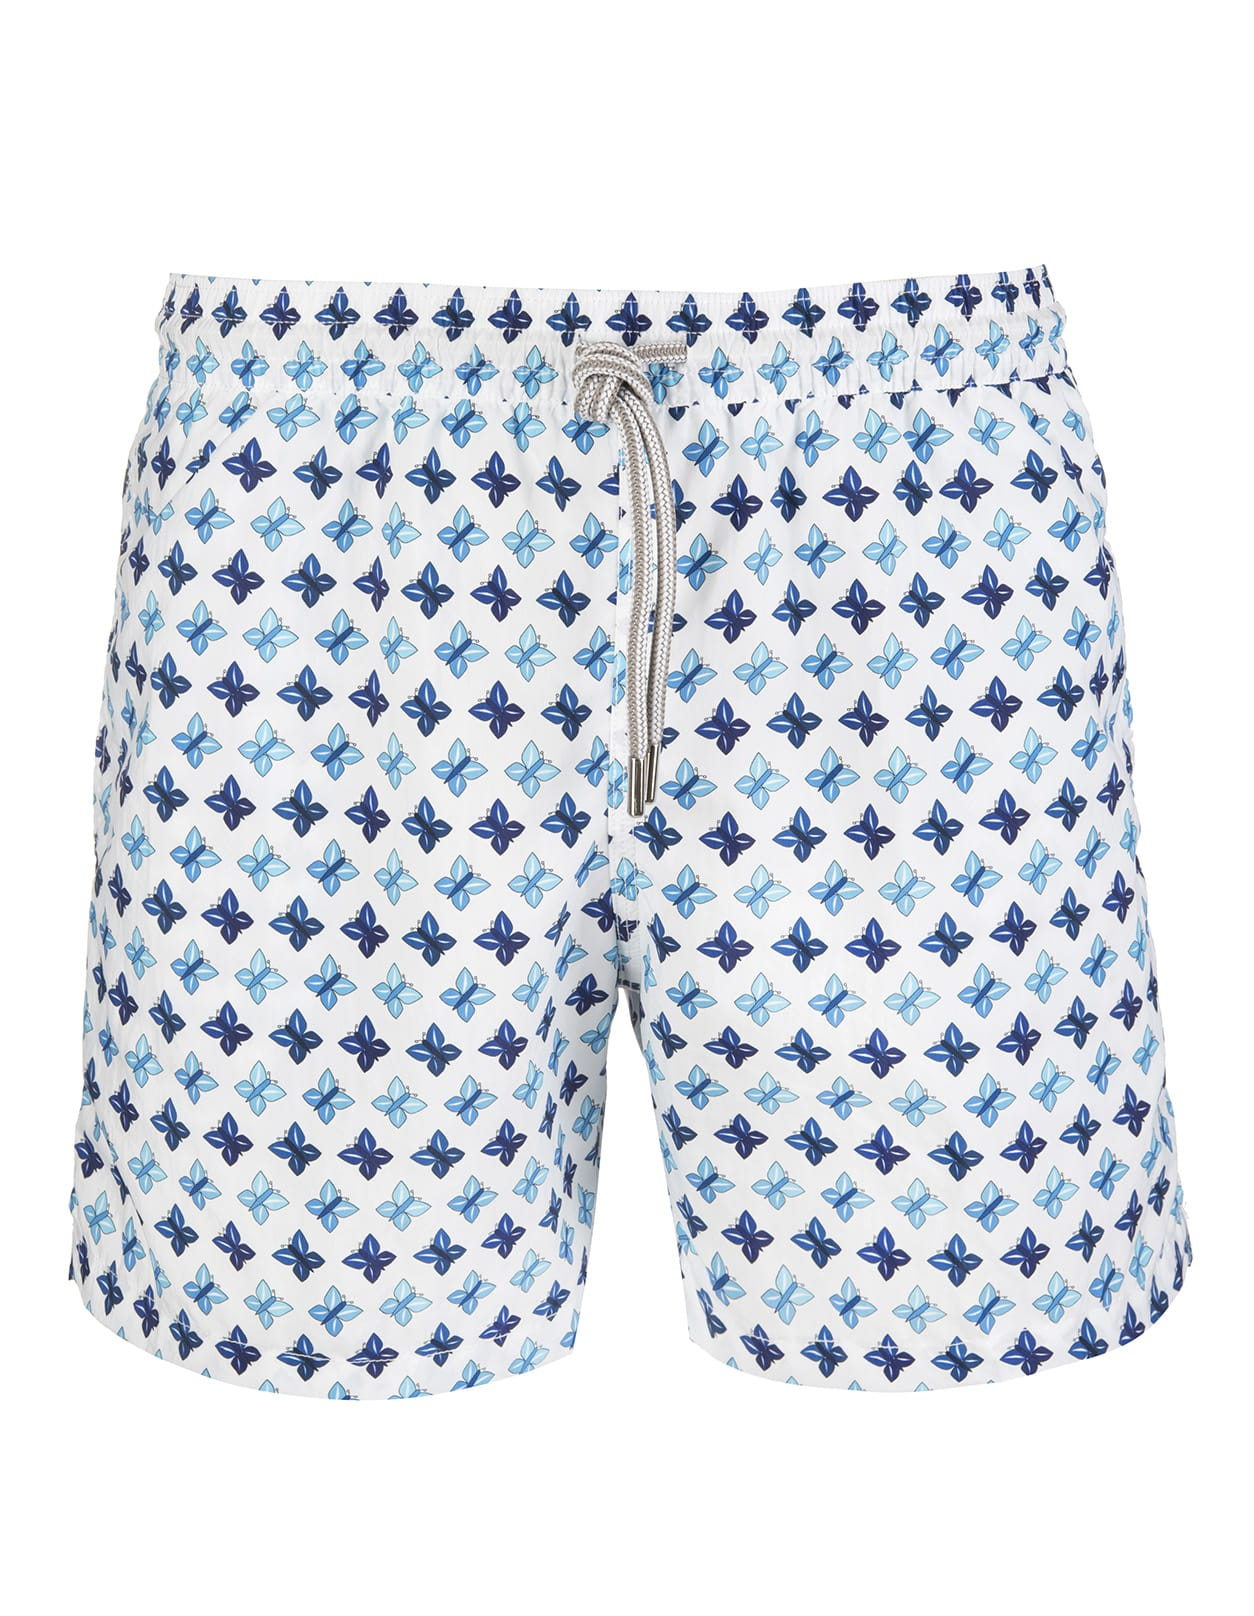 White Swimsuit With Blue Butterflies Pattern